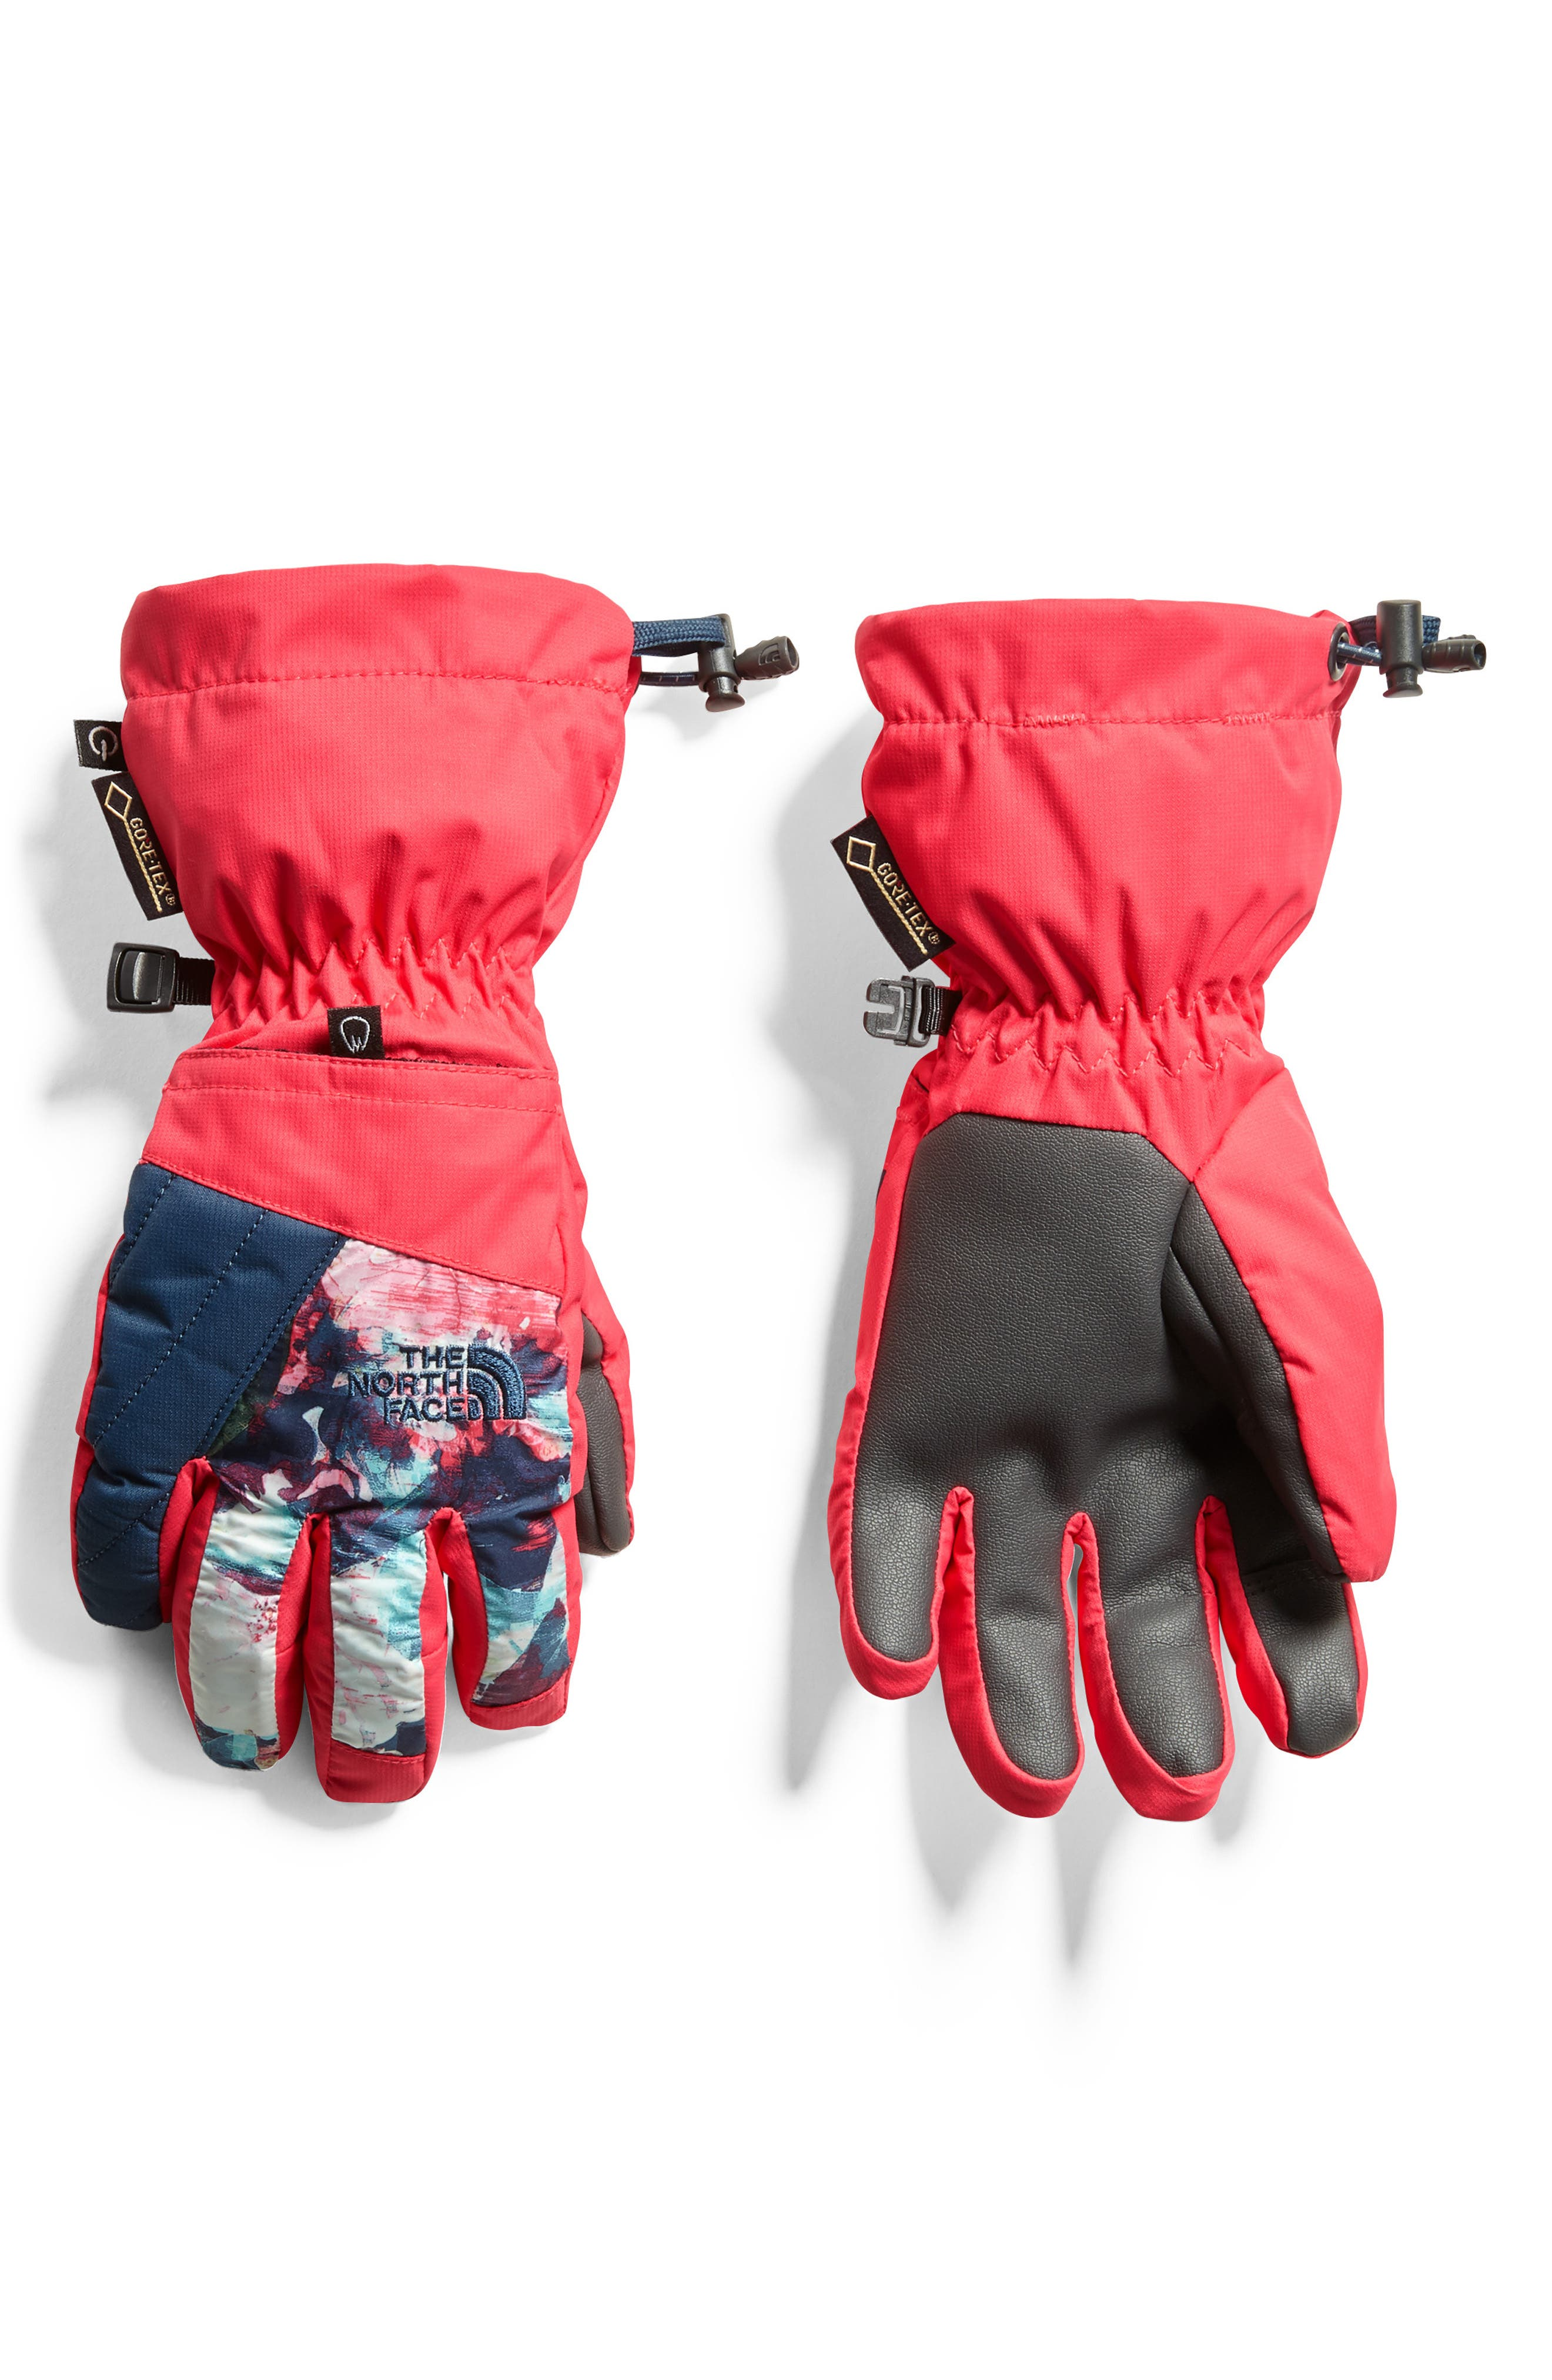 Girls The North Face Montana GoreTex Waterproof Gloves Size Large  Pink